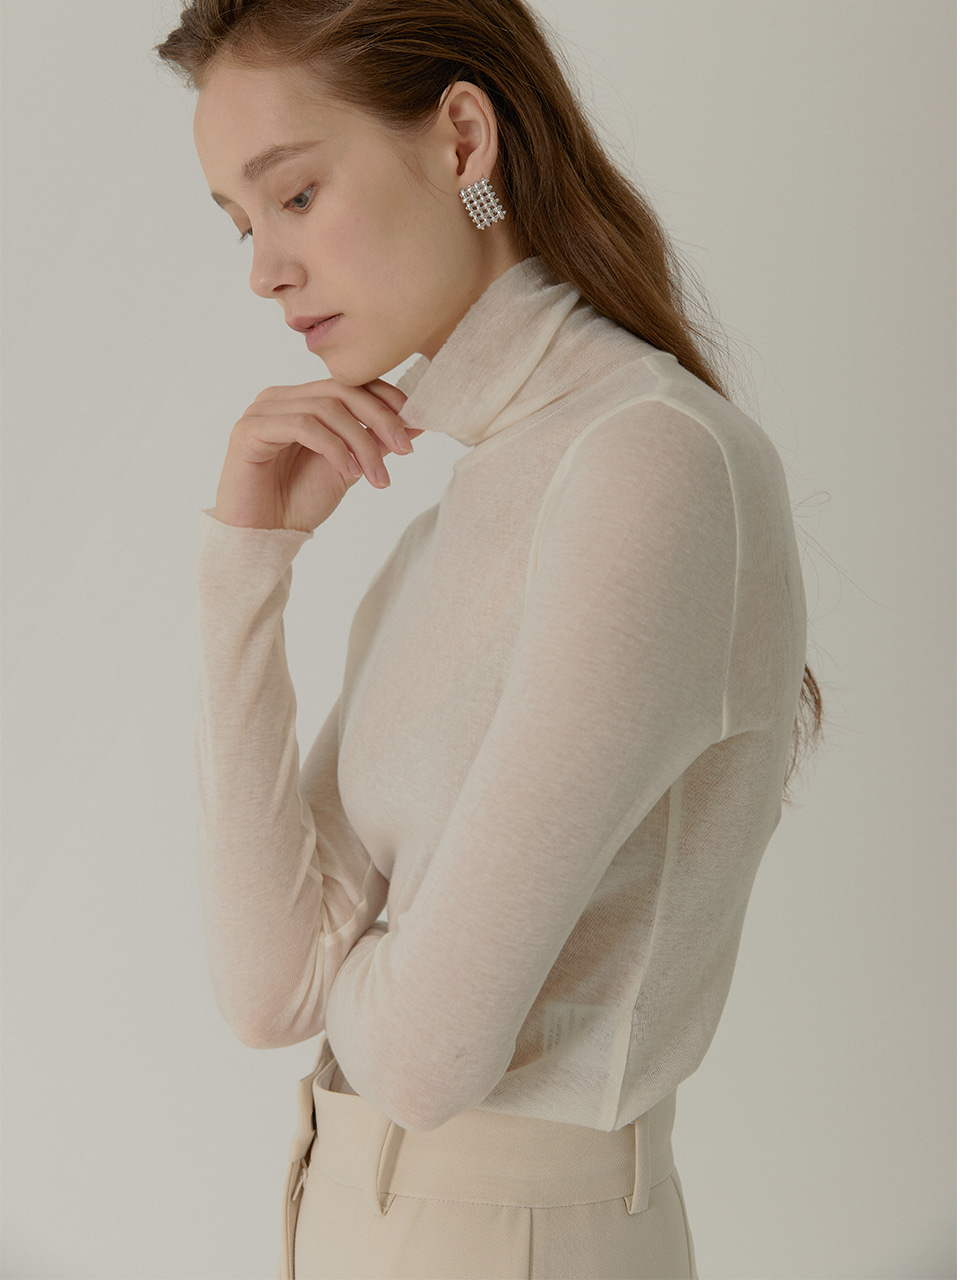 ERICA Sheer Wool Turtle Neck_IVORY